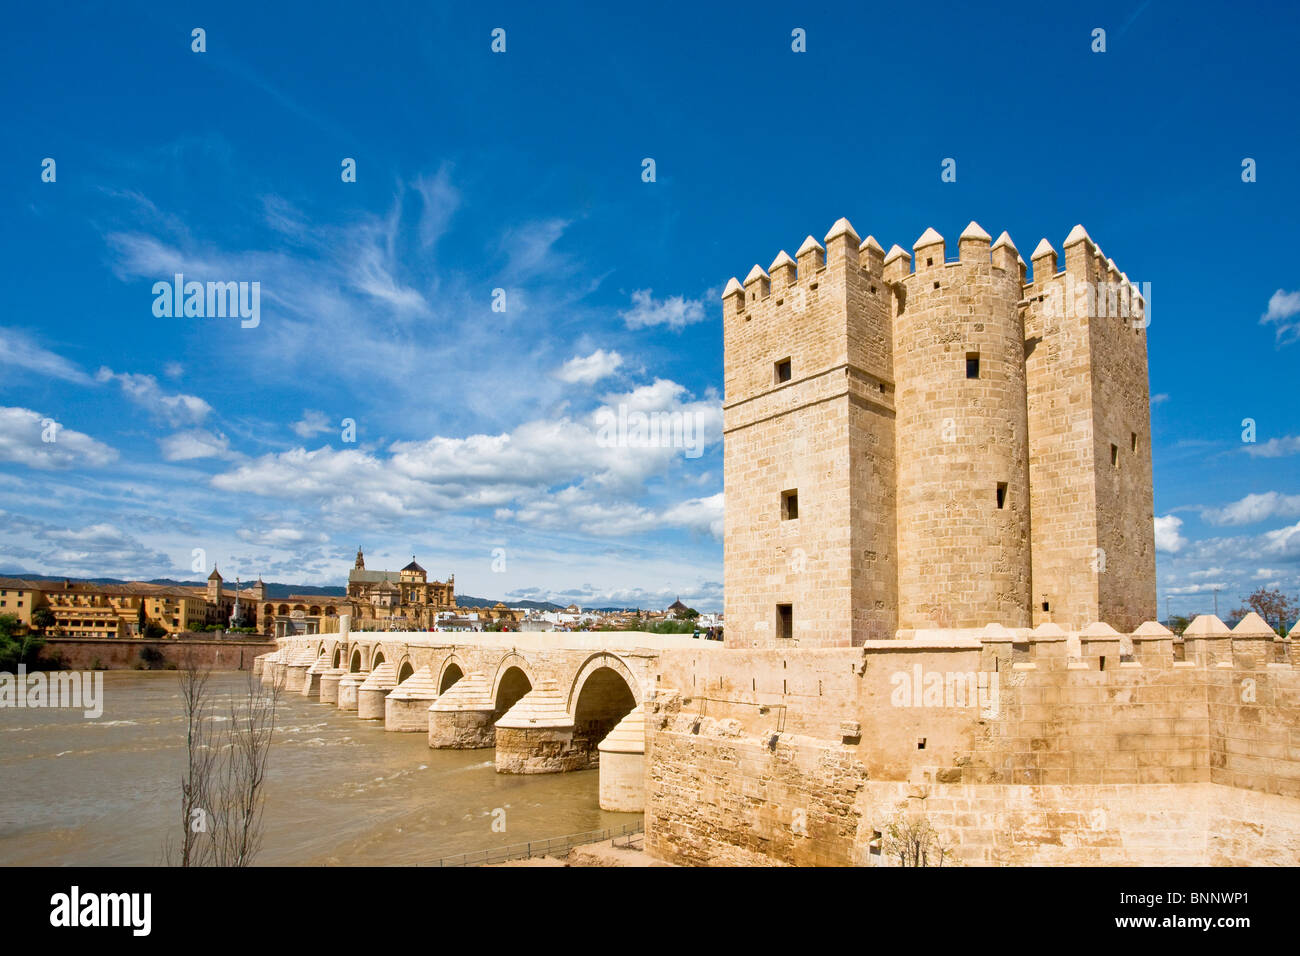 Andalusia Spain bridge Roman tower rook La Lalahorra traveling tourism vacation holidays - Stock Image